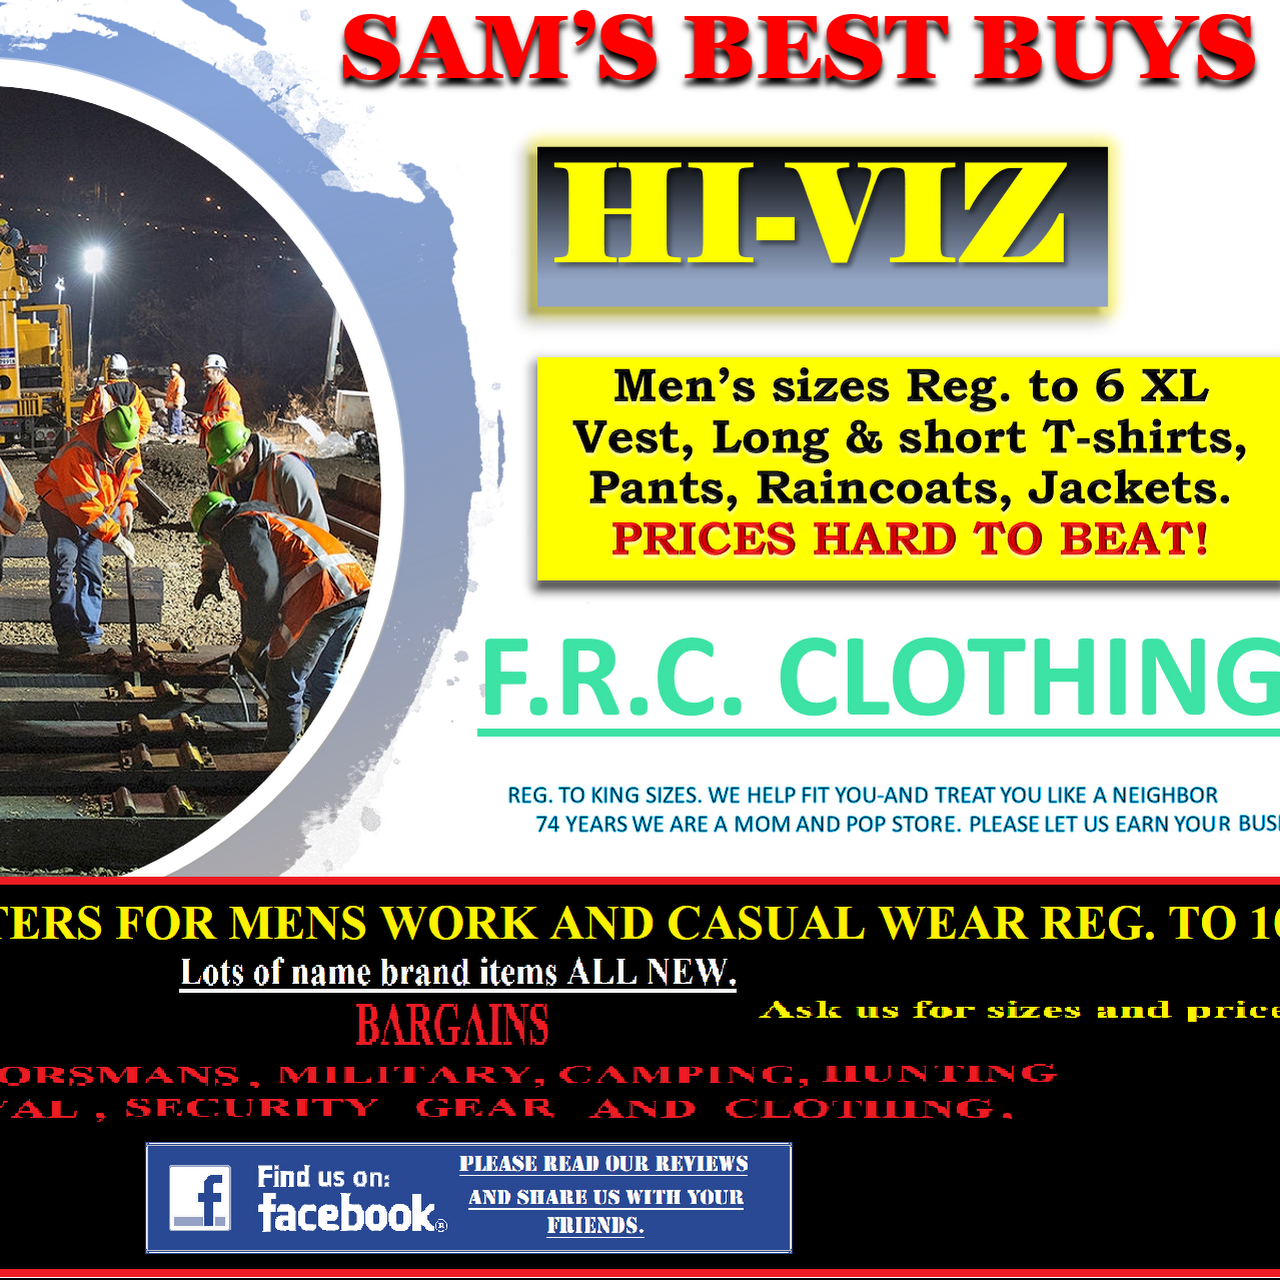 Sam's Best Buys Big and tall clothing up to 10 xl & best